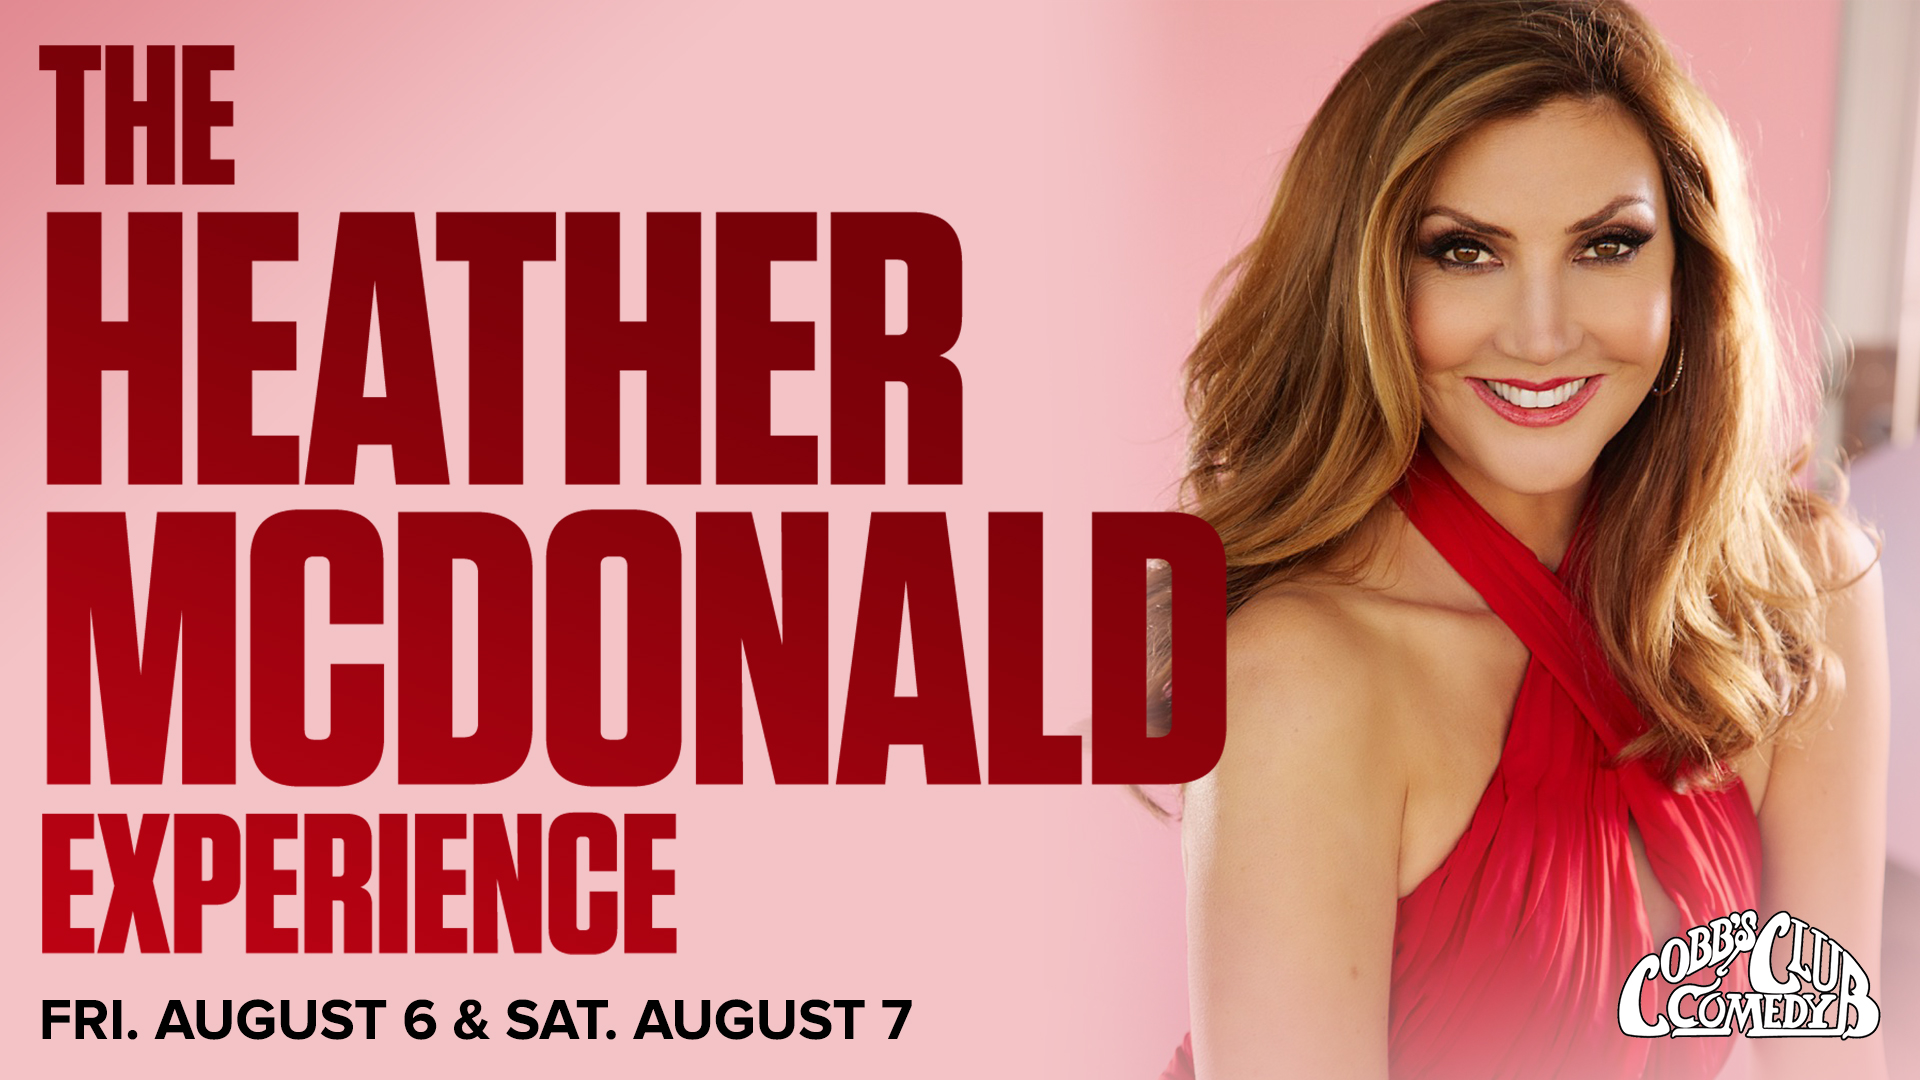 The Heather McDonald Experience: Stand Up Comedy and Juicy Scoop